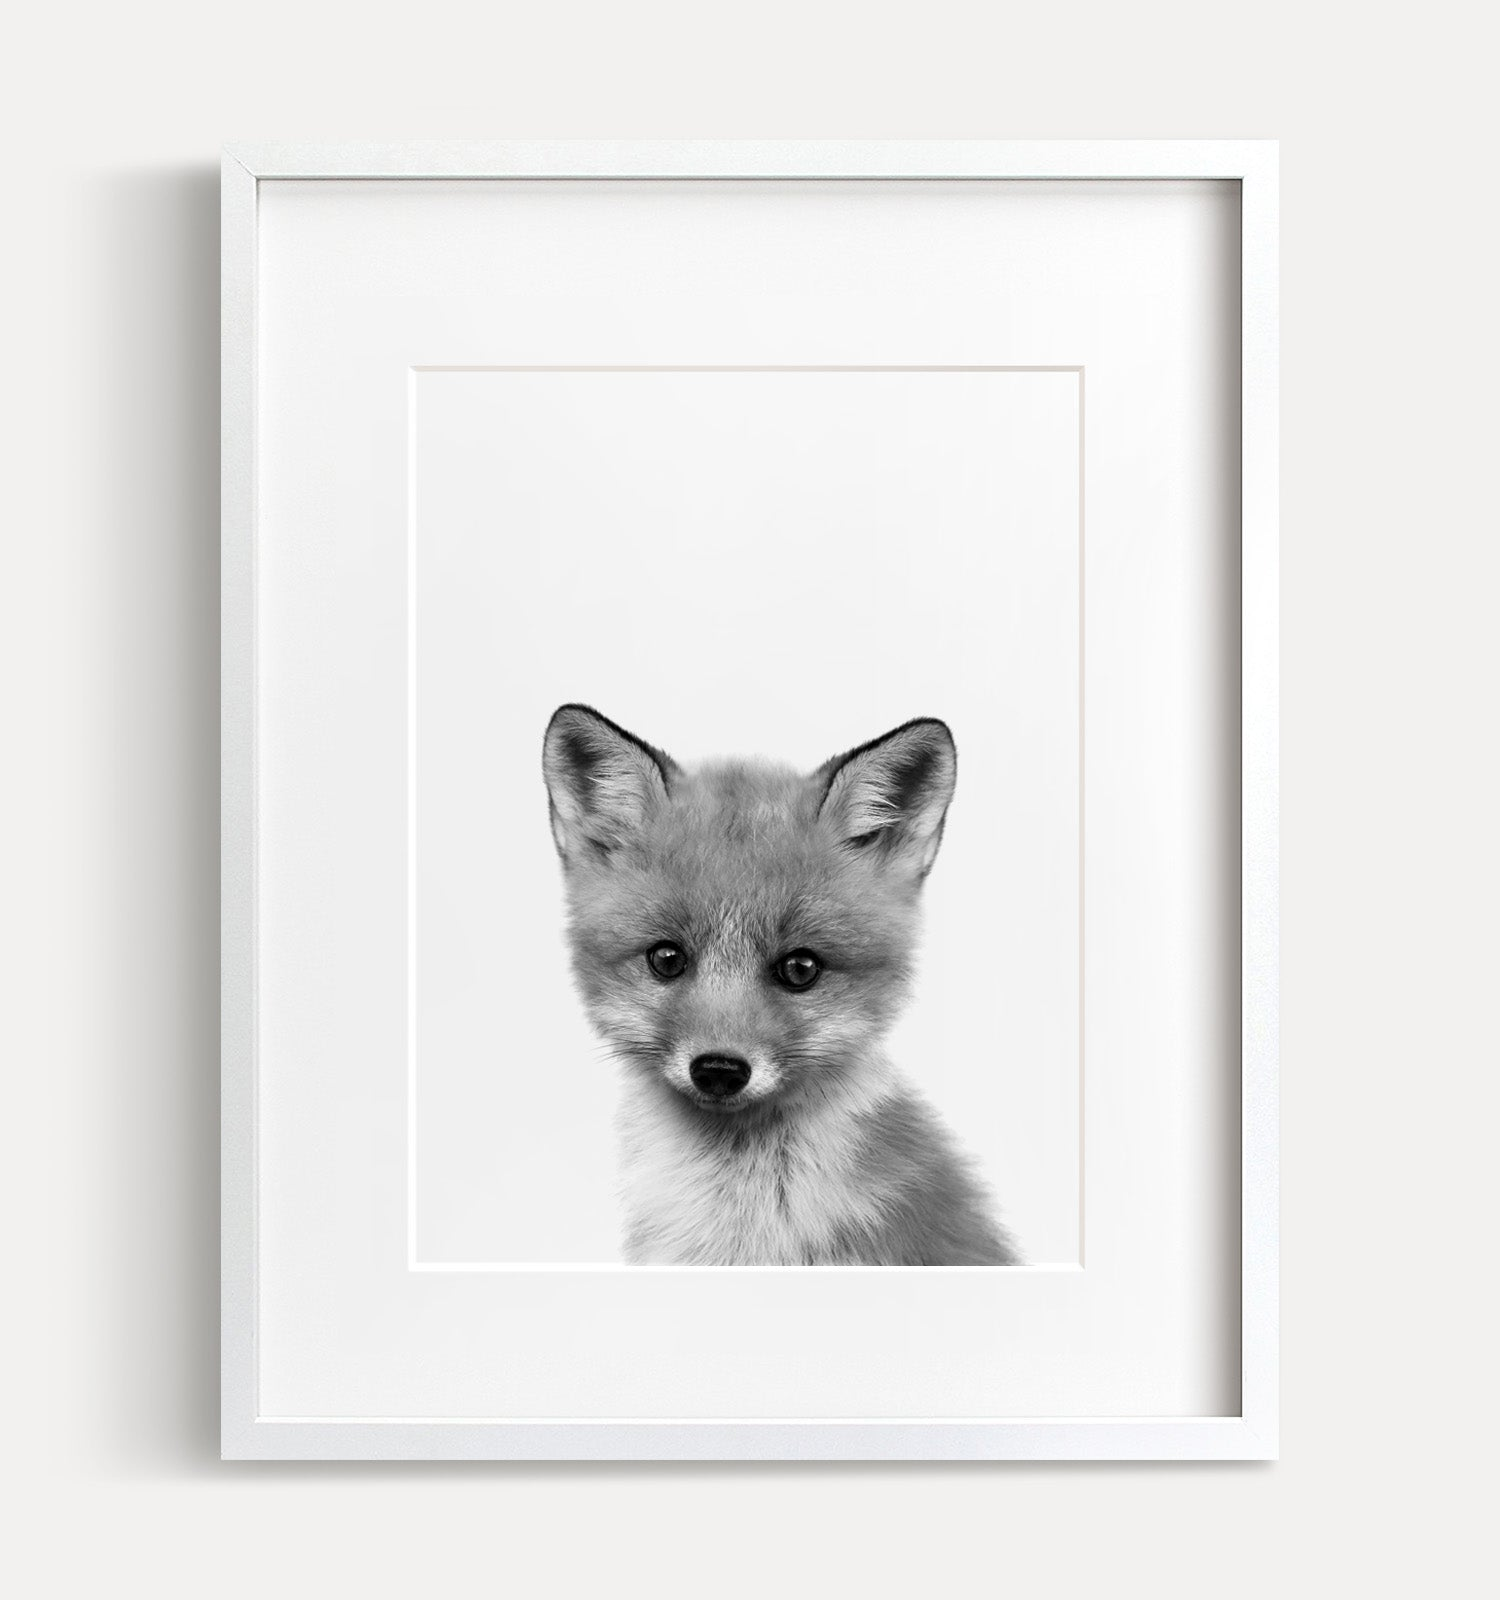 Baby Fox - Black and White Printable Art